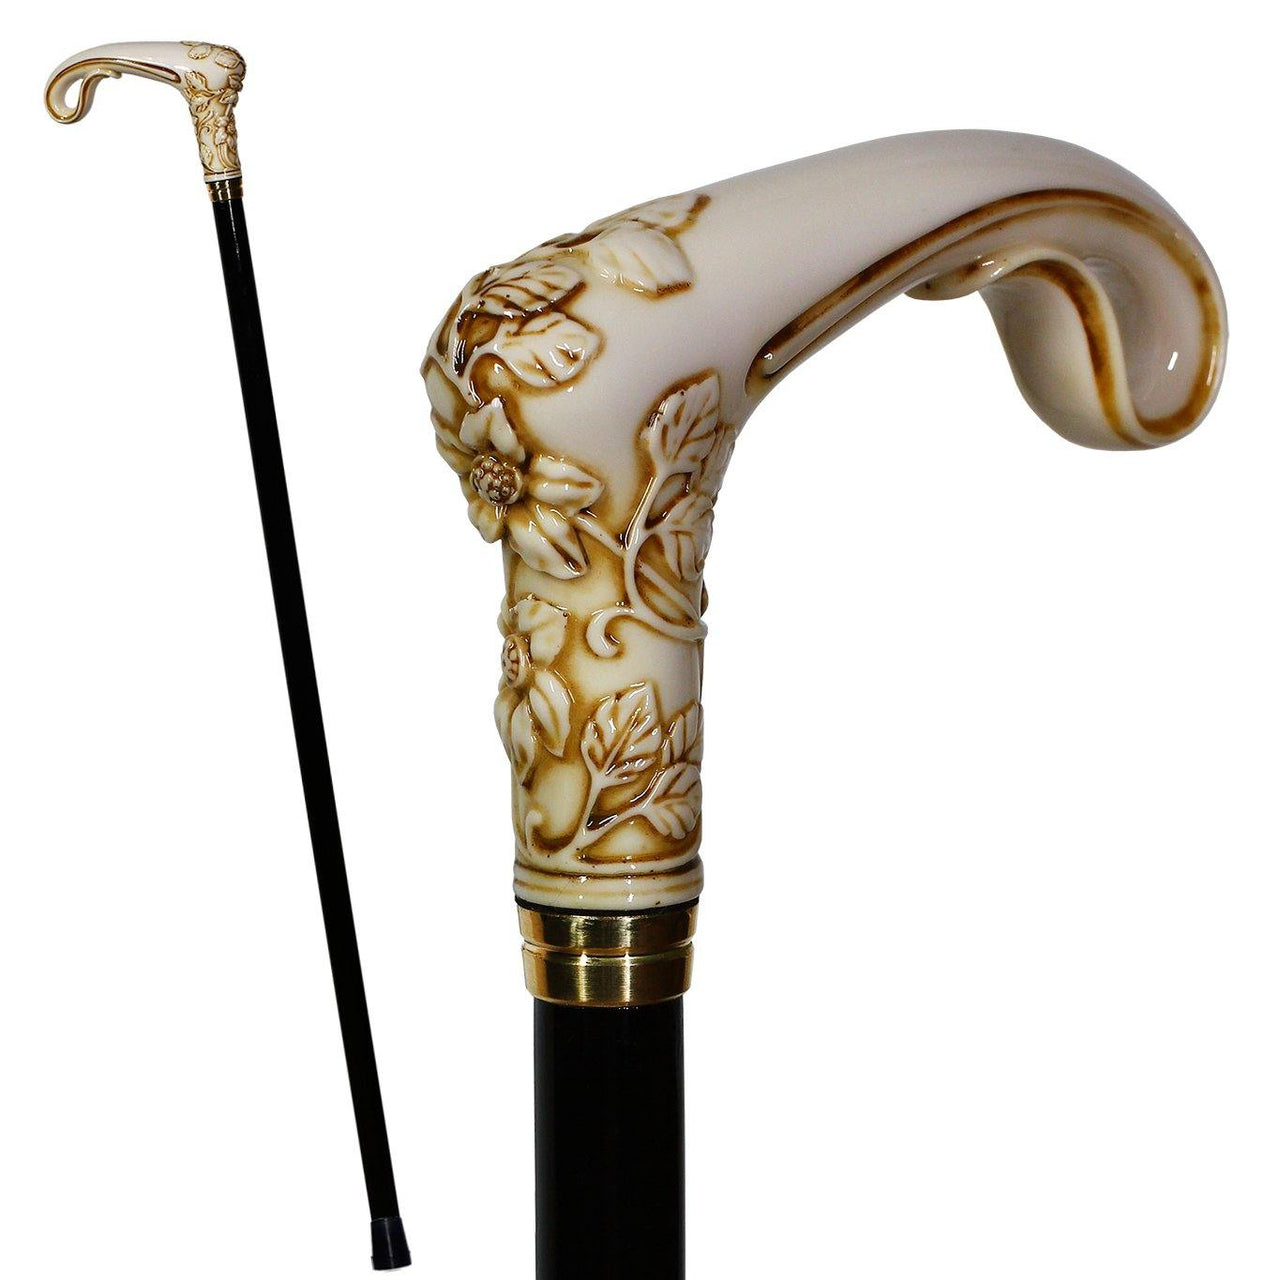 Elegy#2 Light Ivory Color Walking Stick Cane - GC-Artis Walking Sticks Canes